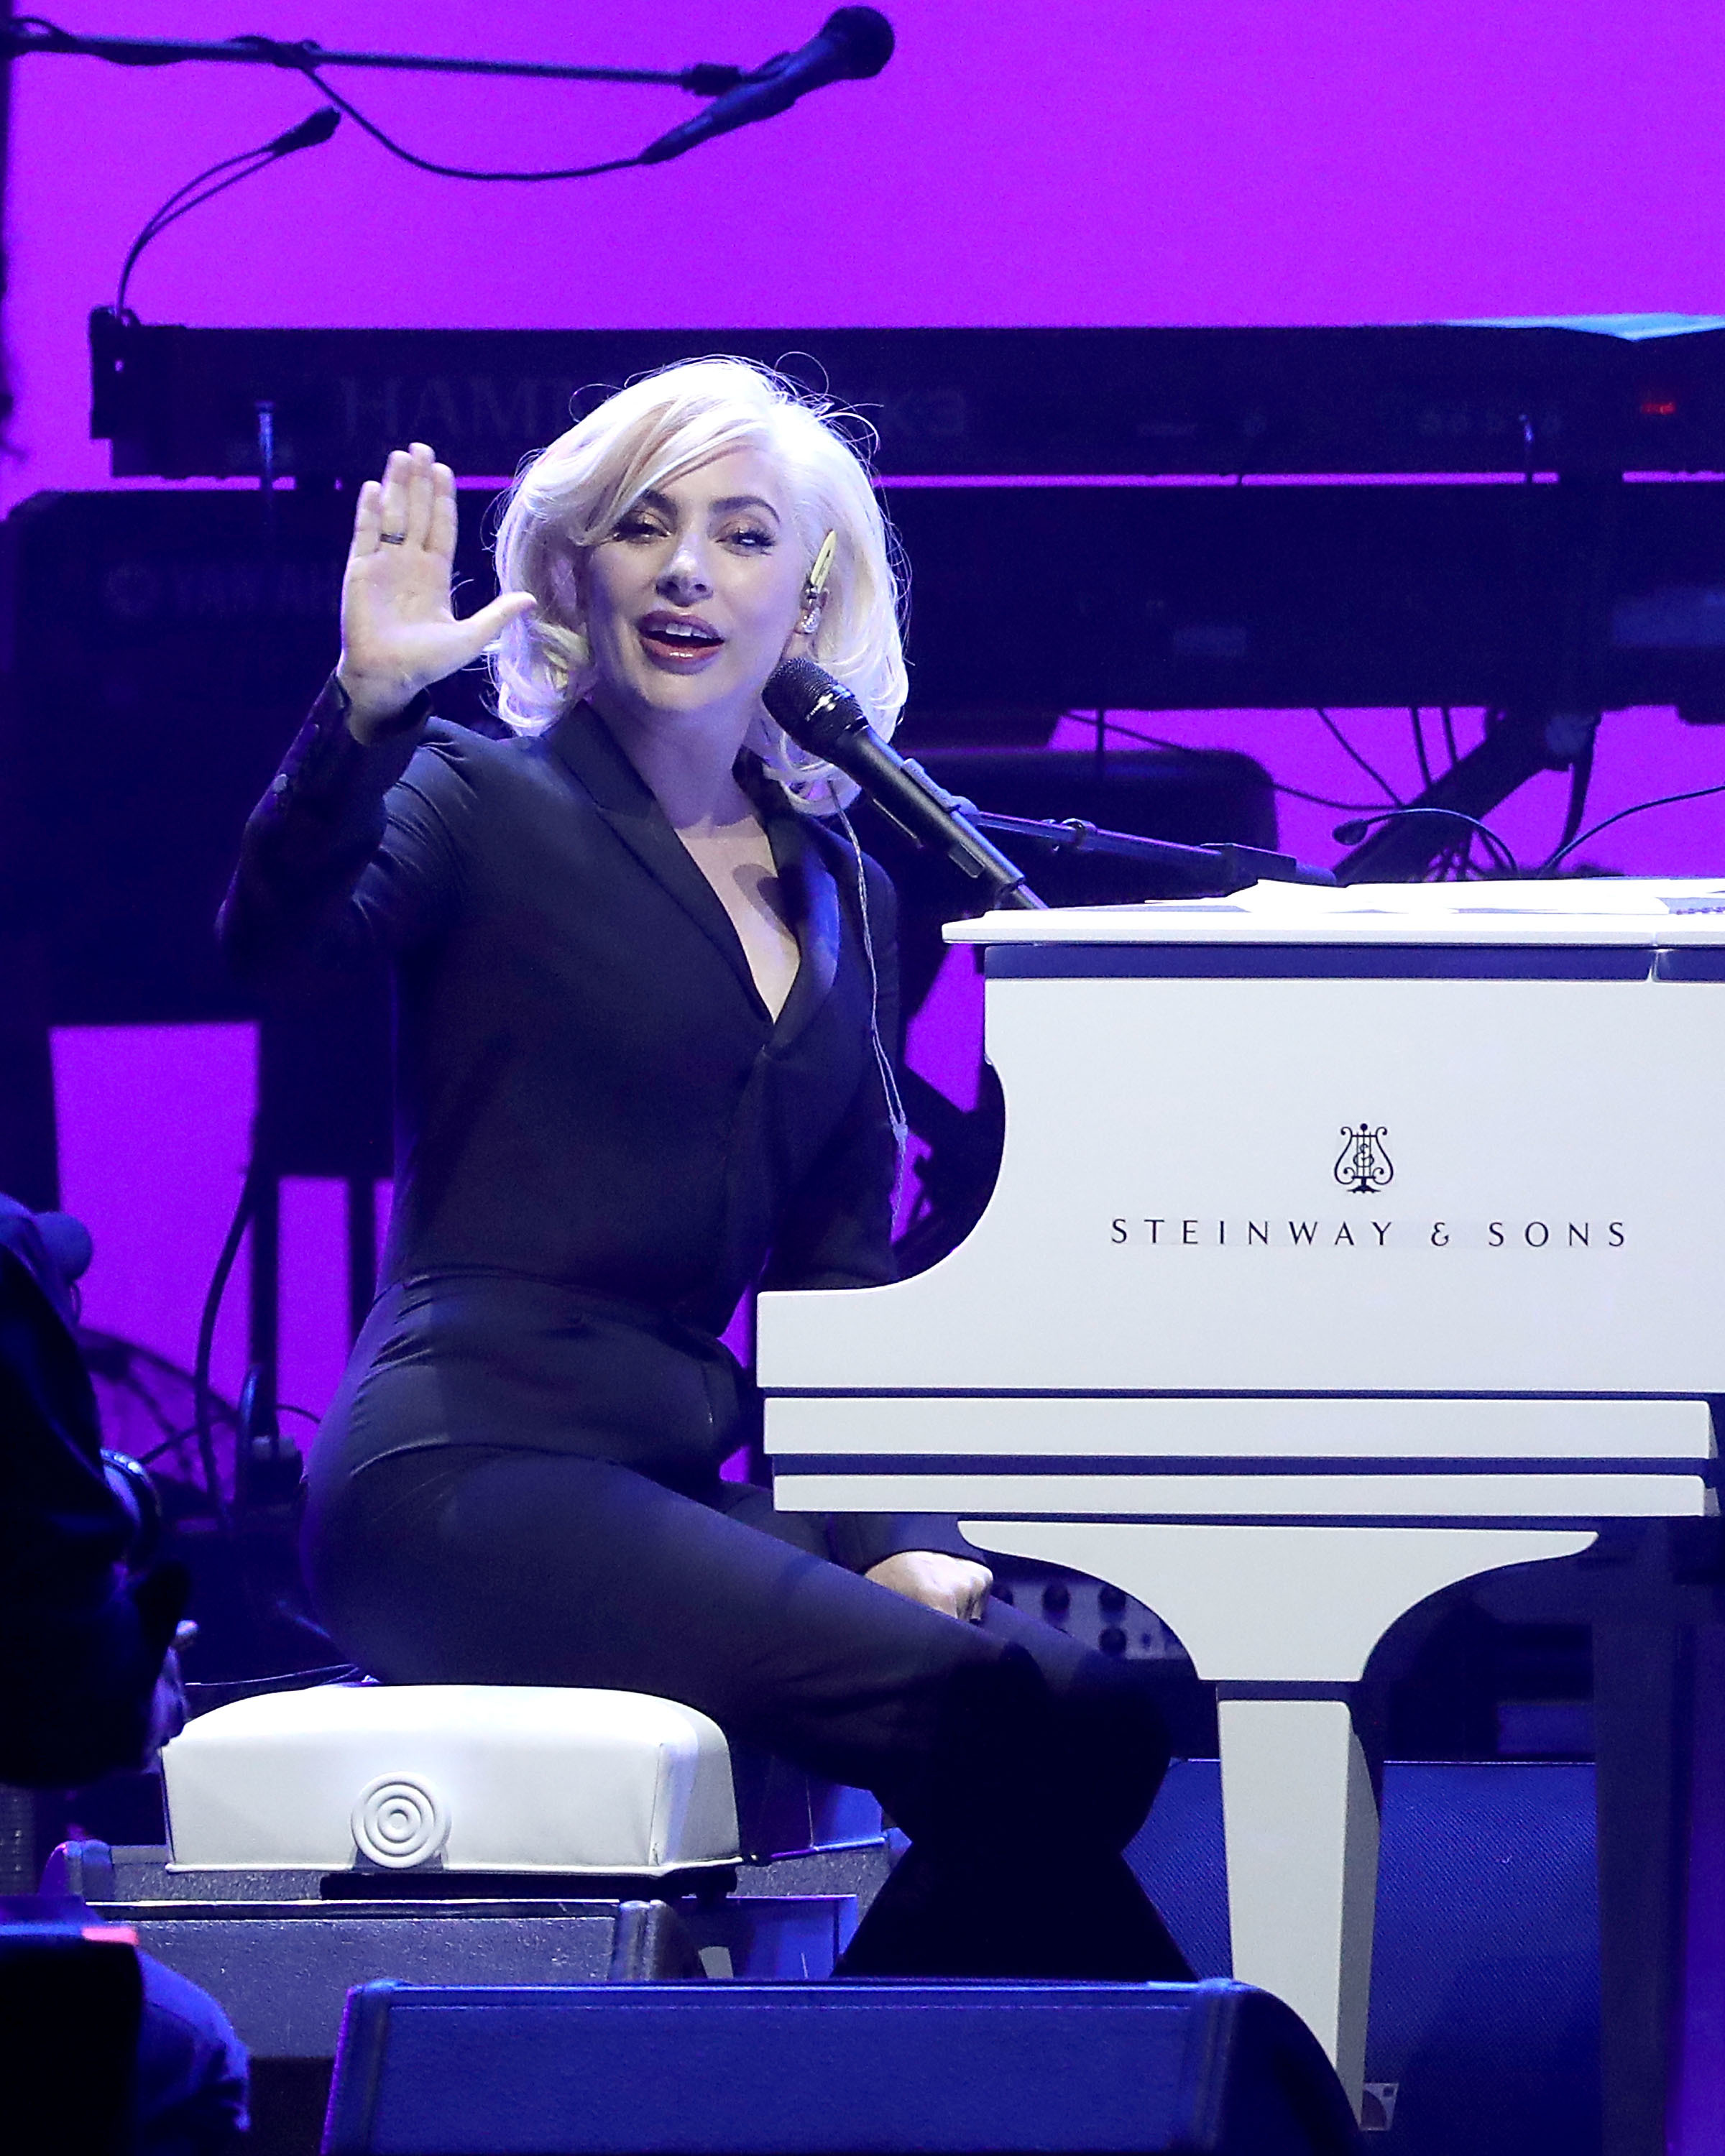 Lady Gaga stops her show to help an injured fan